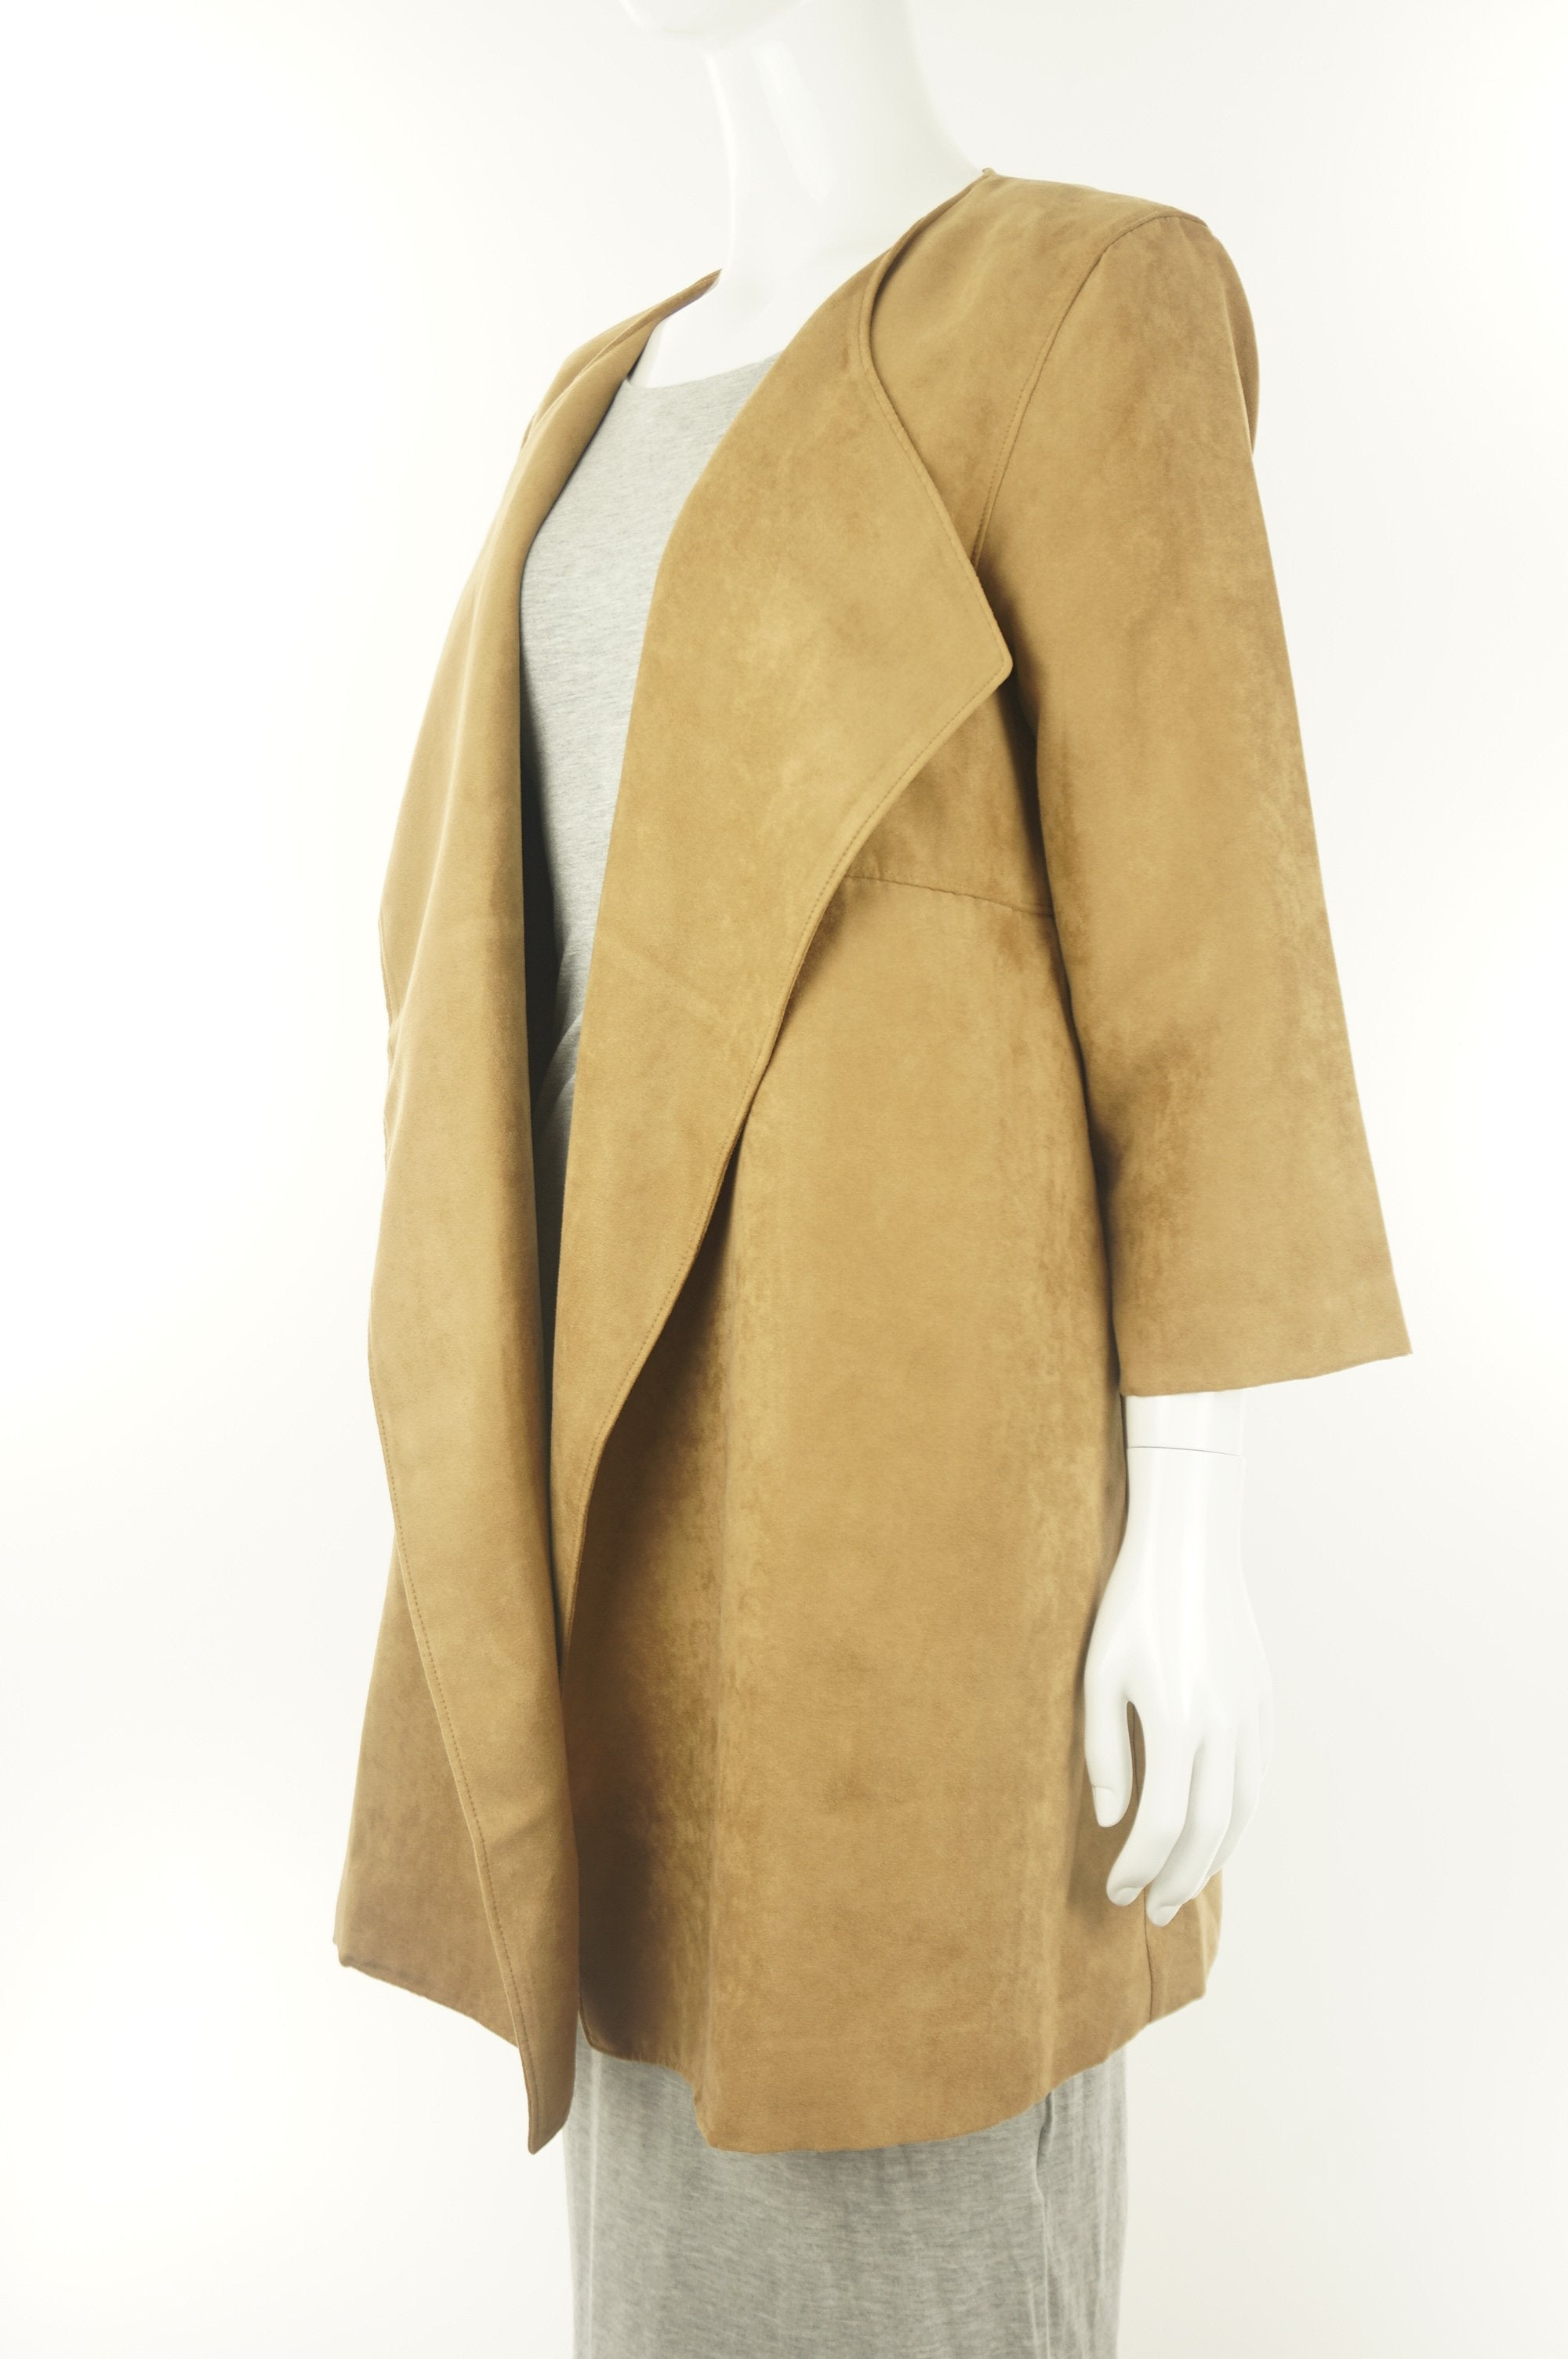 H&M Faux Suede Cardigan, The kind of cardigan you throw on super quickly before going out, just in case the weather is not as warm;), Brown, 100% polyester, women's Jackets & Coats, women's Brown Jackets & Coats, H&M women's Jackets & Coats, women's drape cardigan, women's long warm wool jacket, faux suede wrap coat, women's long waterfall drape sweater